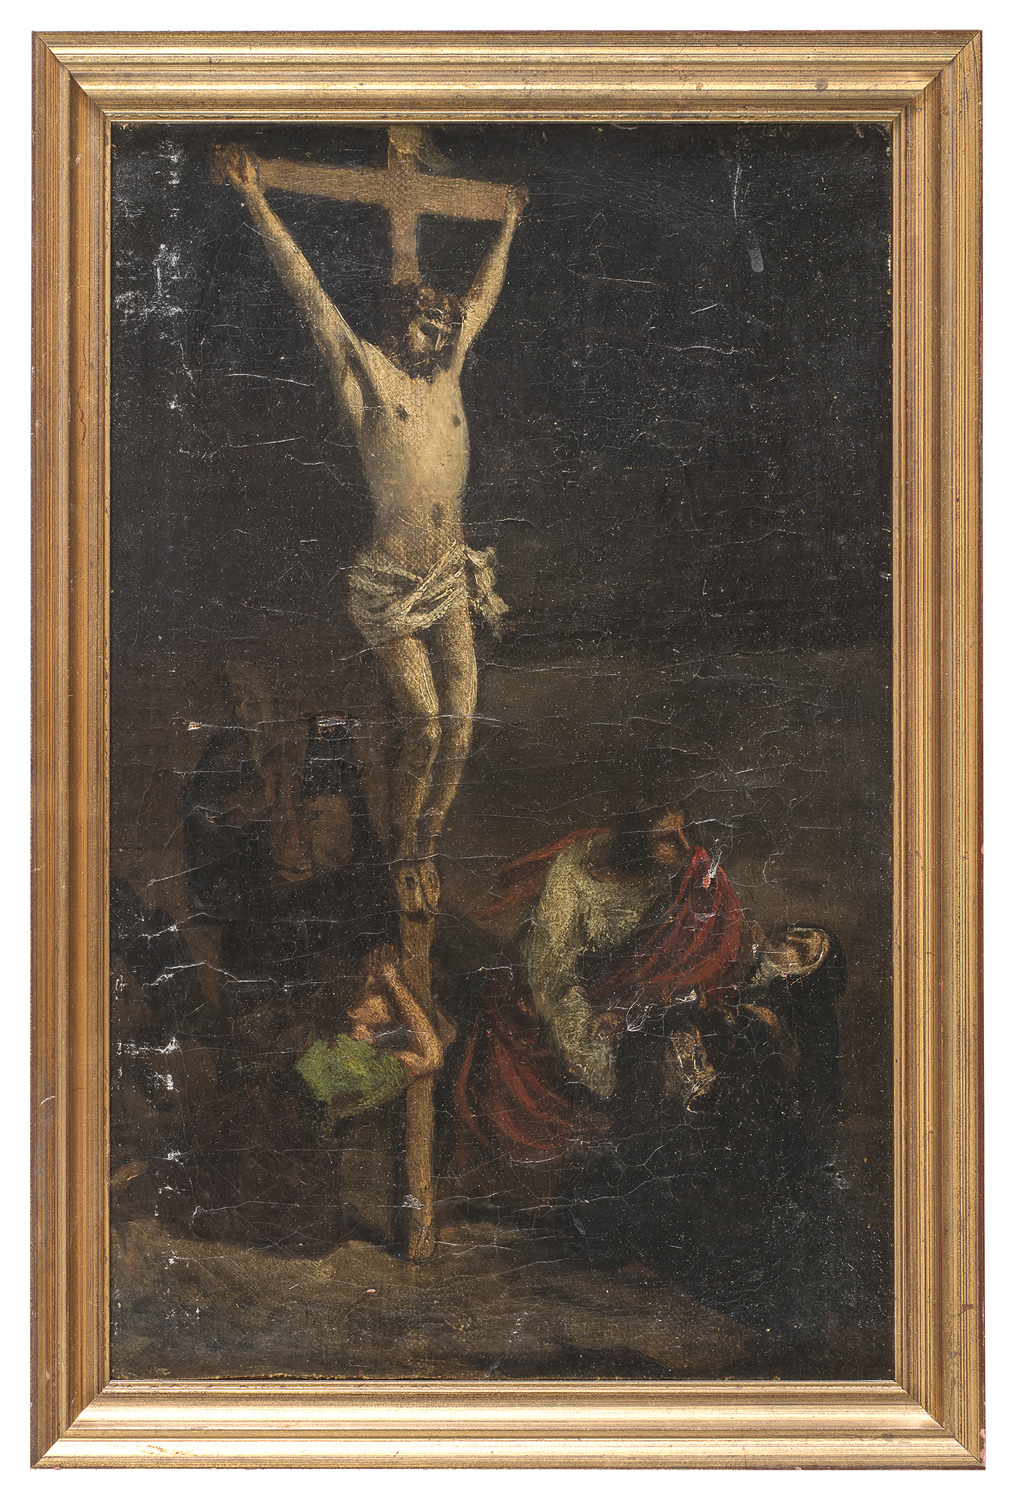 FRENCH OIL PAINTING LATE 18TH EARLY 19TH CENTURY